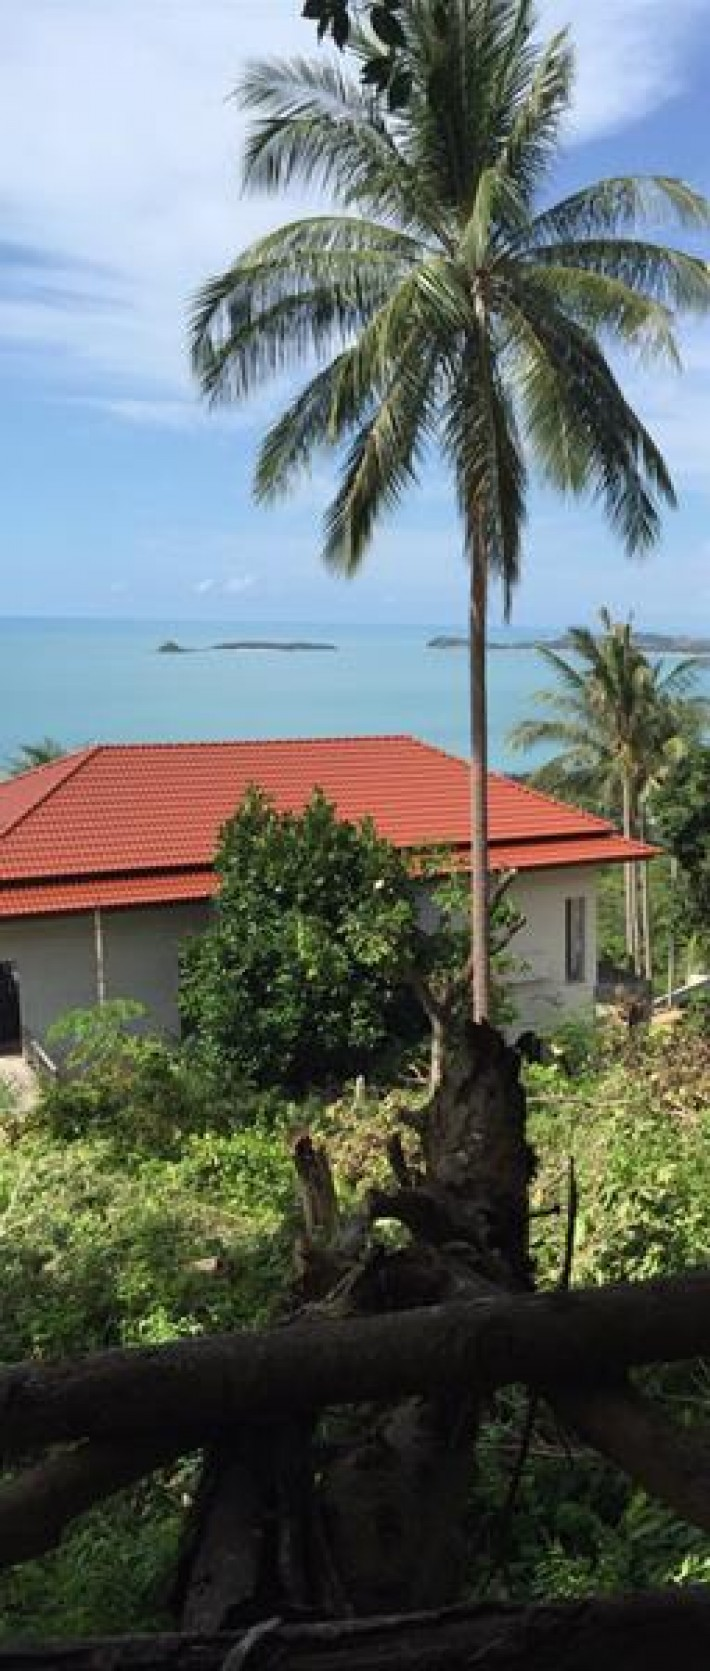 S741: 2 RAI KOH SAMUI LAND PLOT FOR SALE WITH STUNNING SEA VIEWS